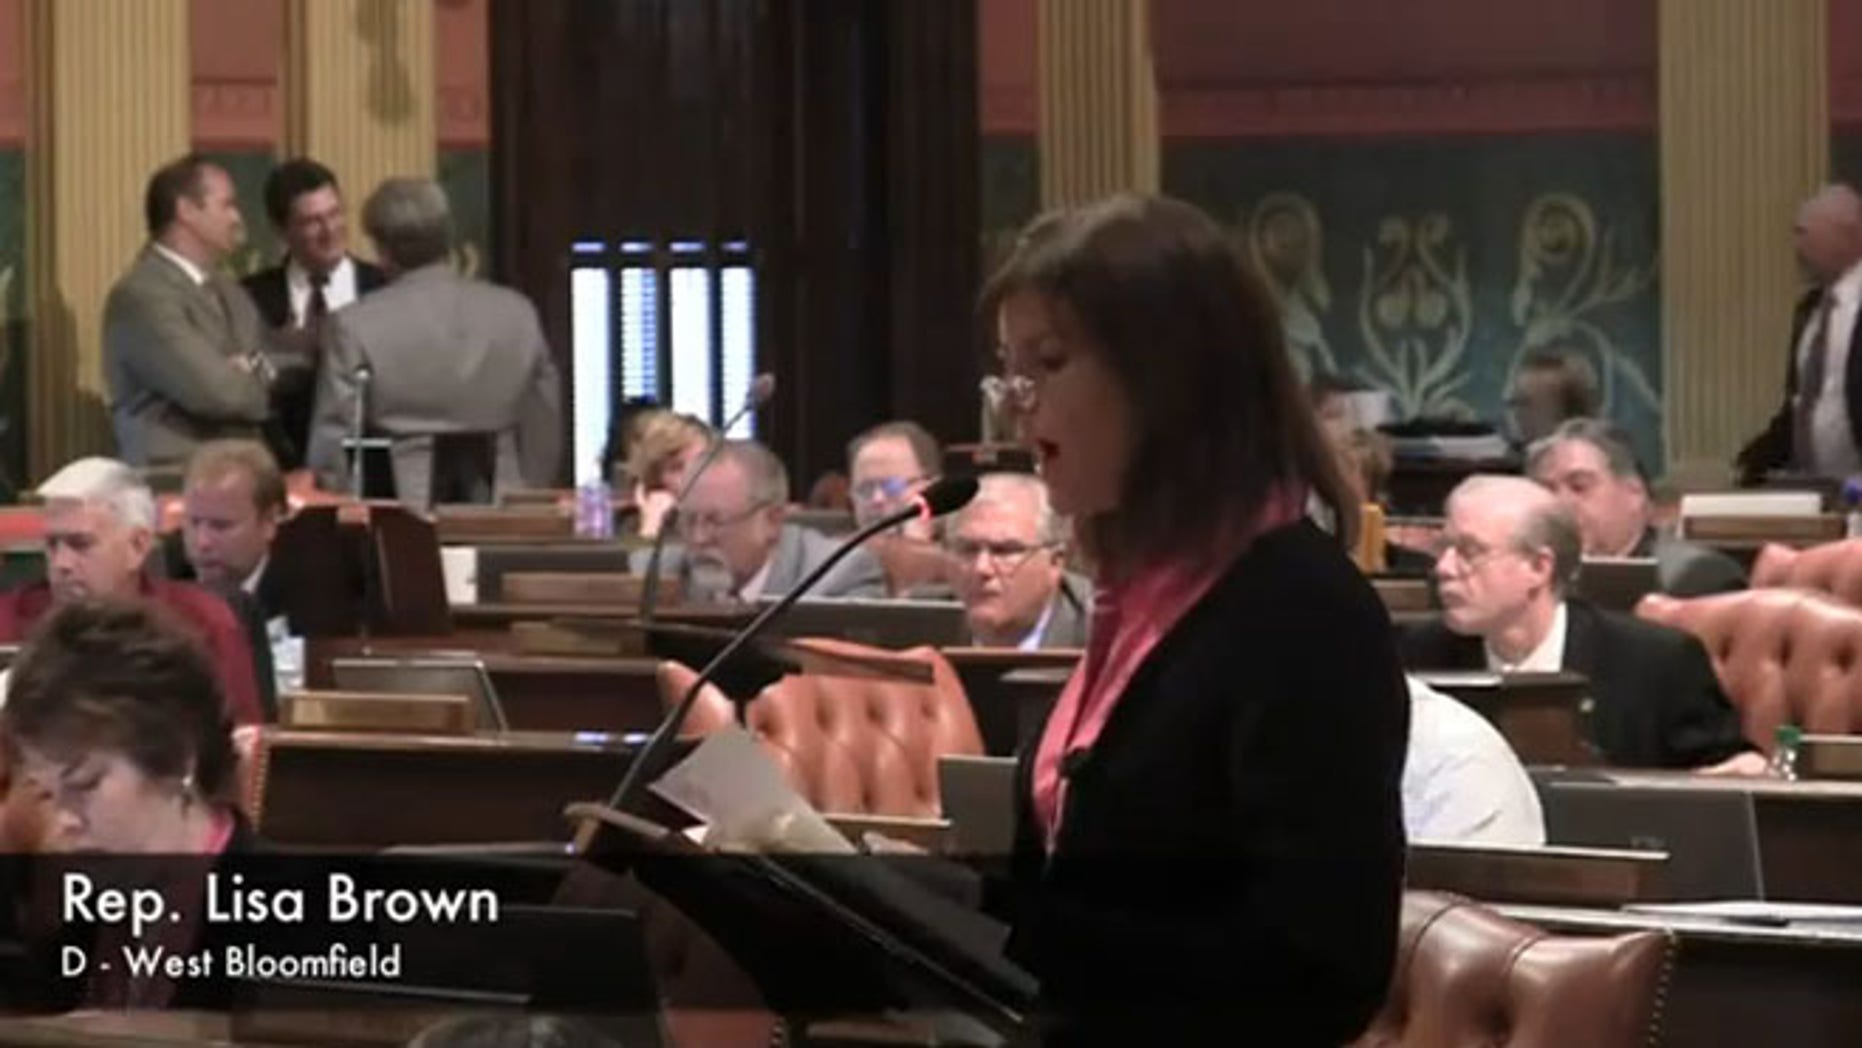 June 13, 2012: Michigan state Rep. Lisa Brown speaks during debate over an anti-abortion bill in Lansing, Mich.